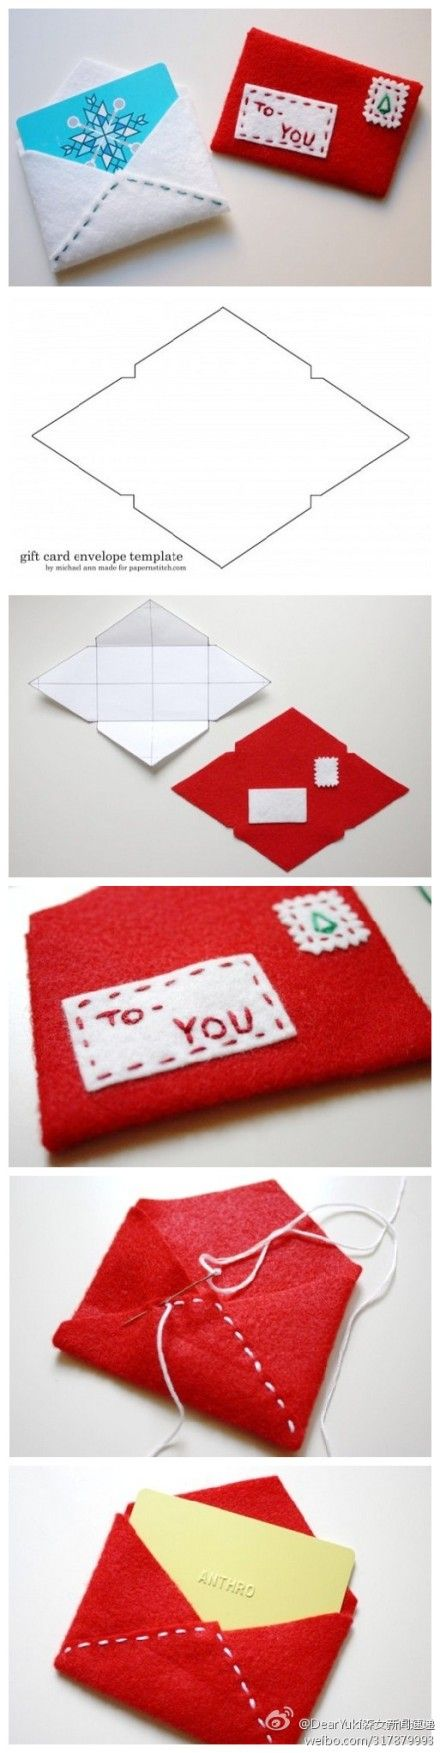 How to sew your very own envelopes!! In love with this AMAZING sewing idea!!! :) <3